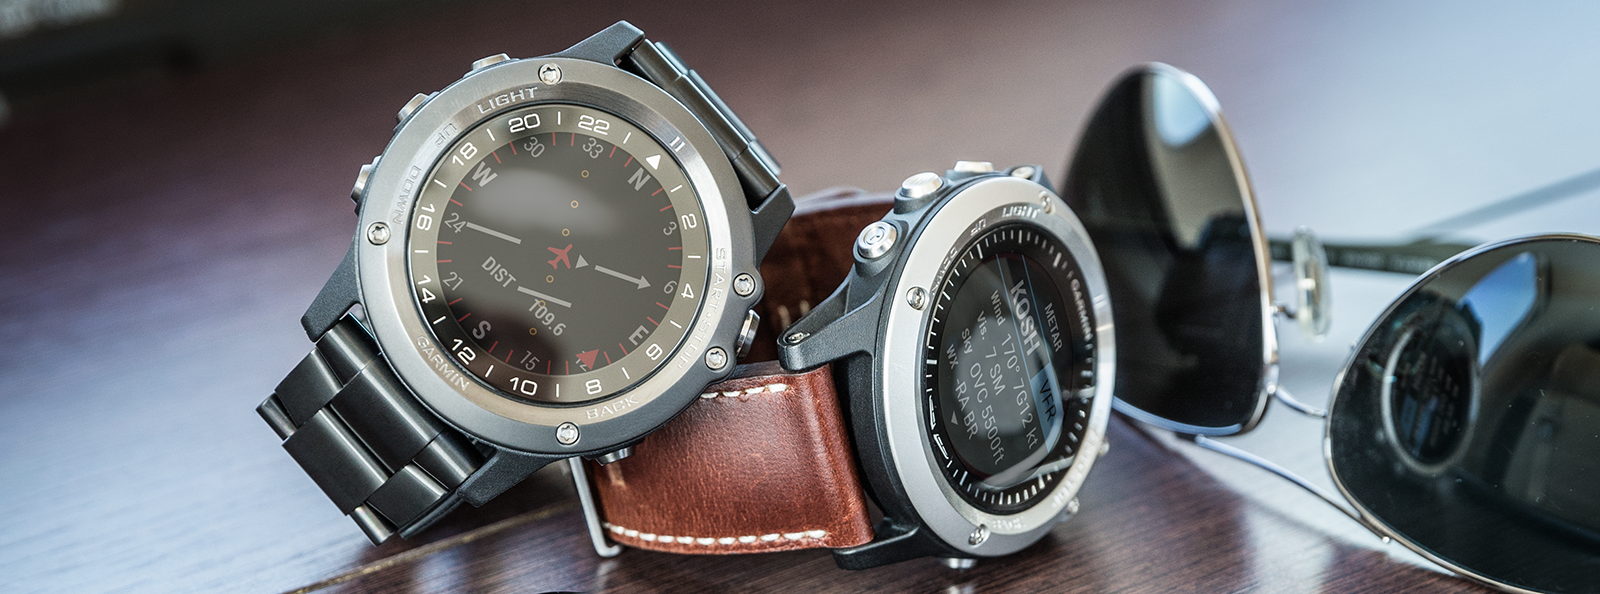 Garmin Introduces the D2 Bravo Titanium Pilot Watch